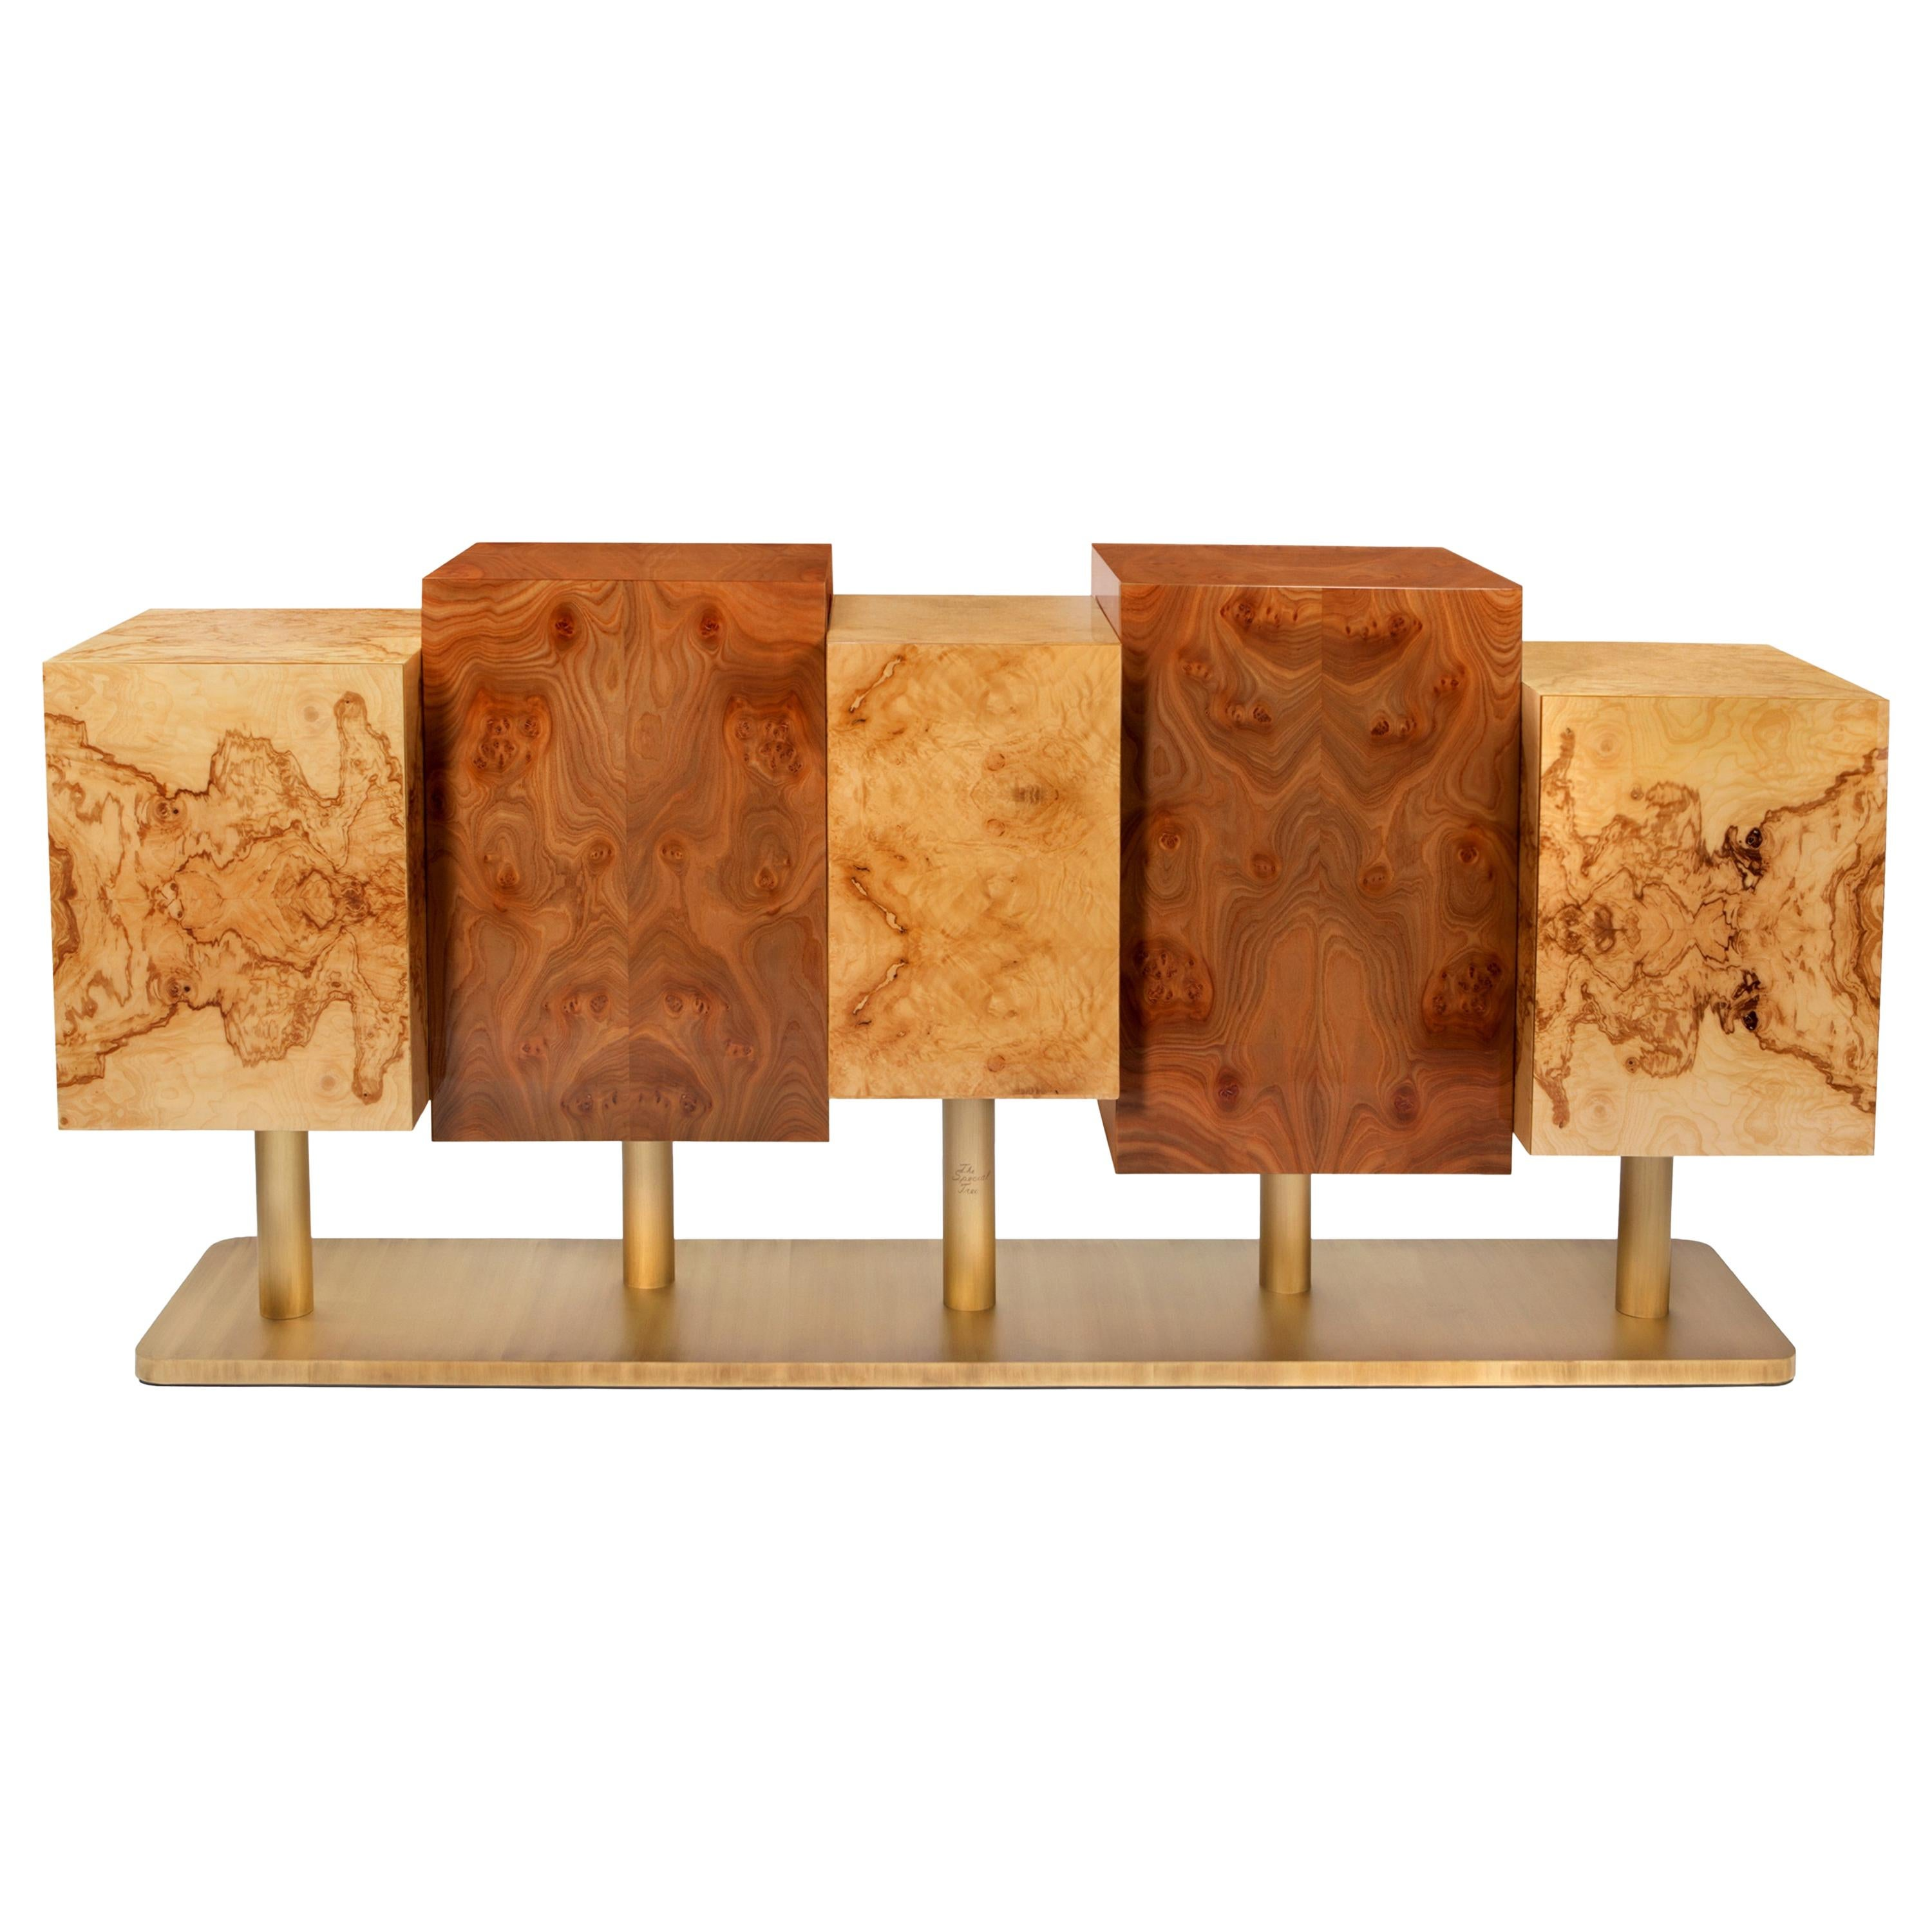 The Special Tree Sideboard, Wood and Brass, InsidherLand by Joana Santos Barbosa